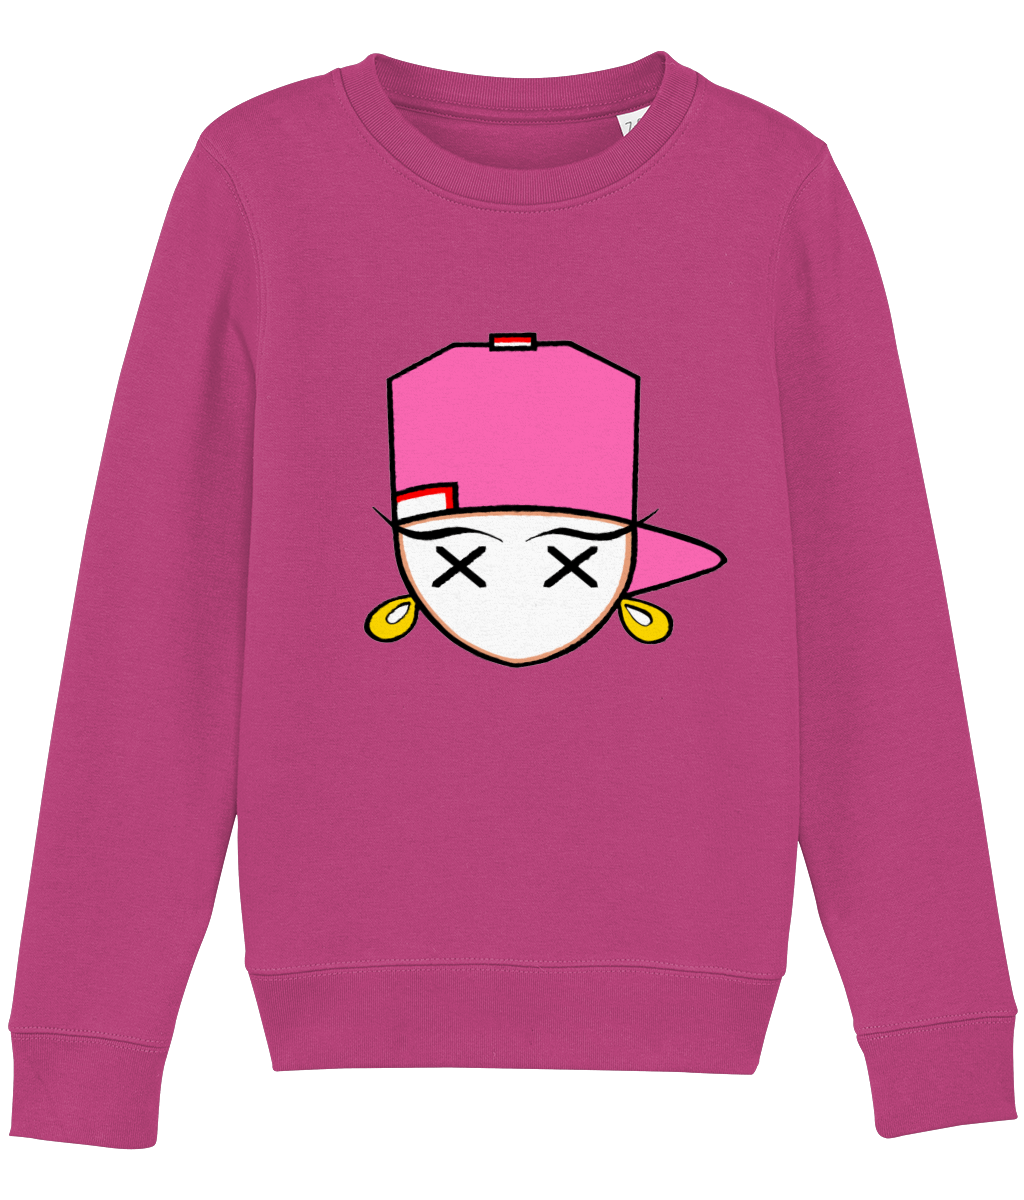 kids sweatshirt Mini Changer 18 hotpink FF69B5